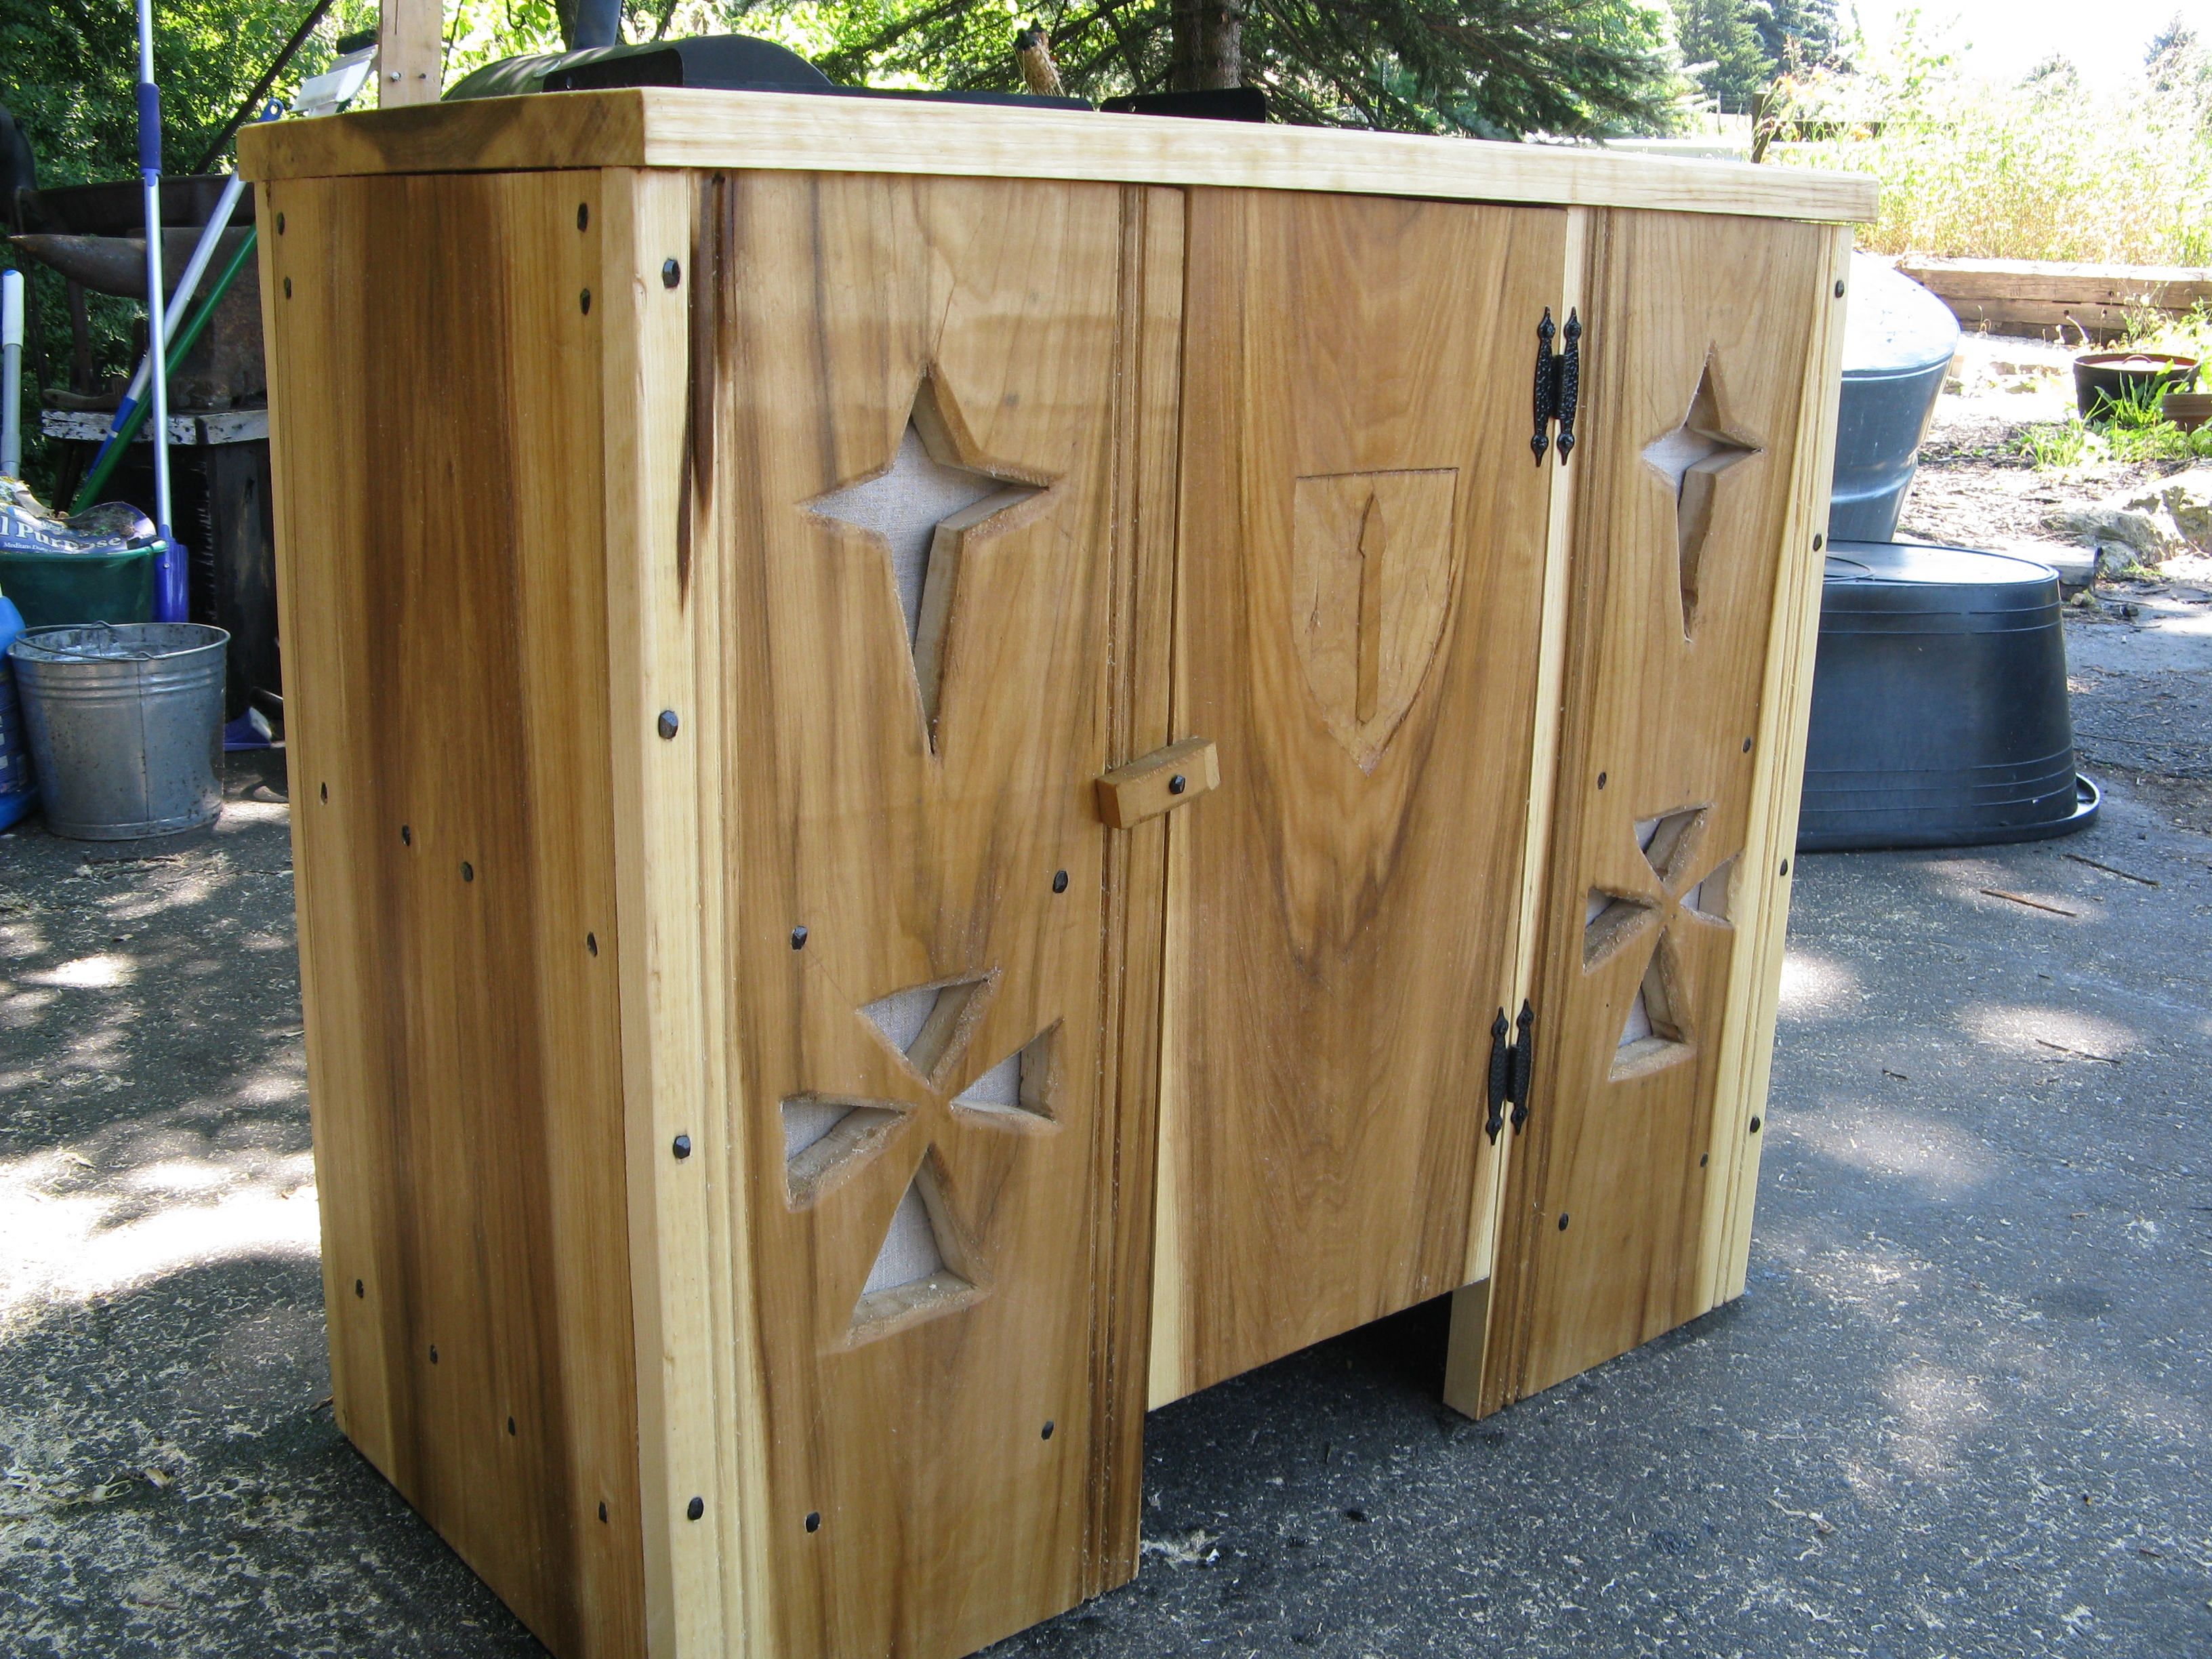 Ambry With Northern Army Star Design; Made Of Poplar And Finished With  Linseed Oil.